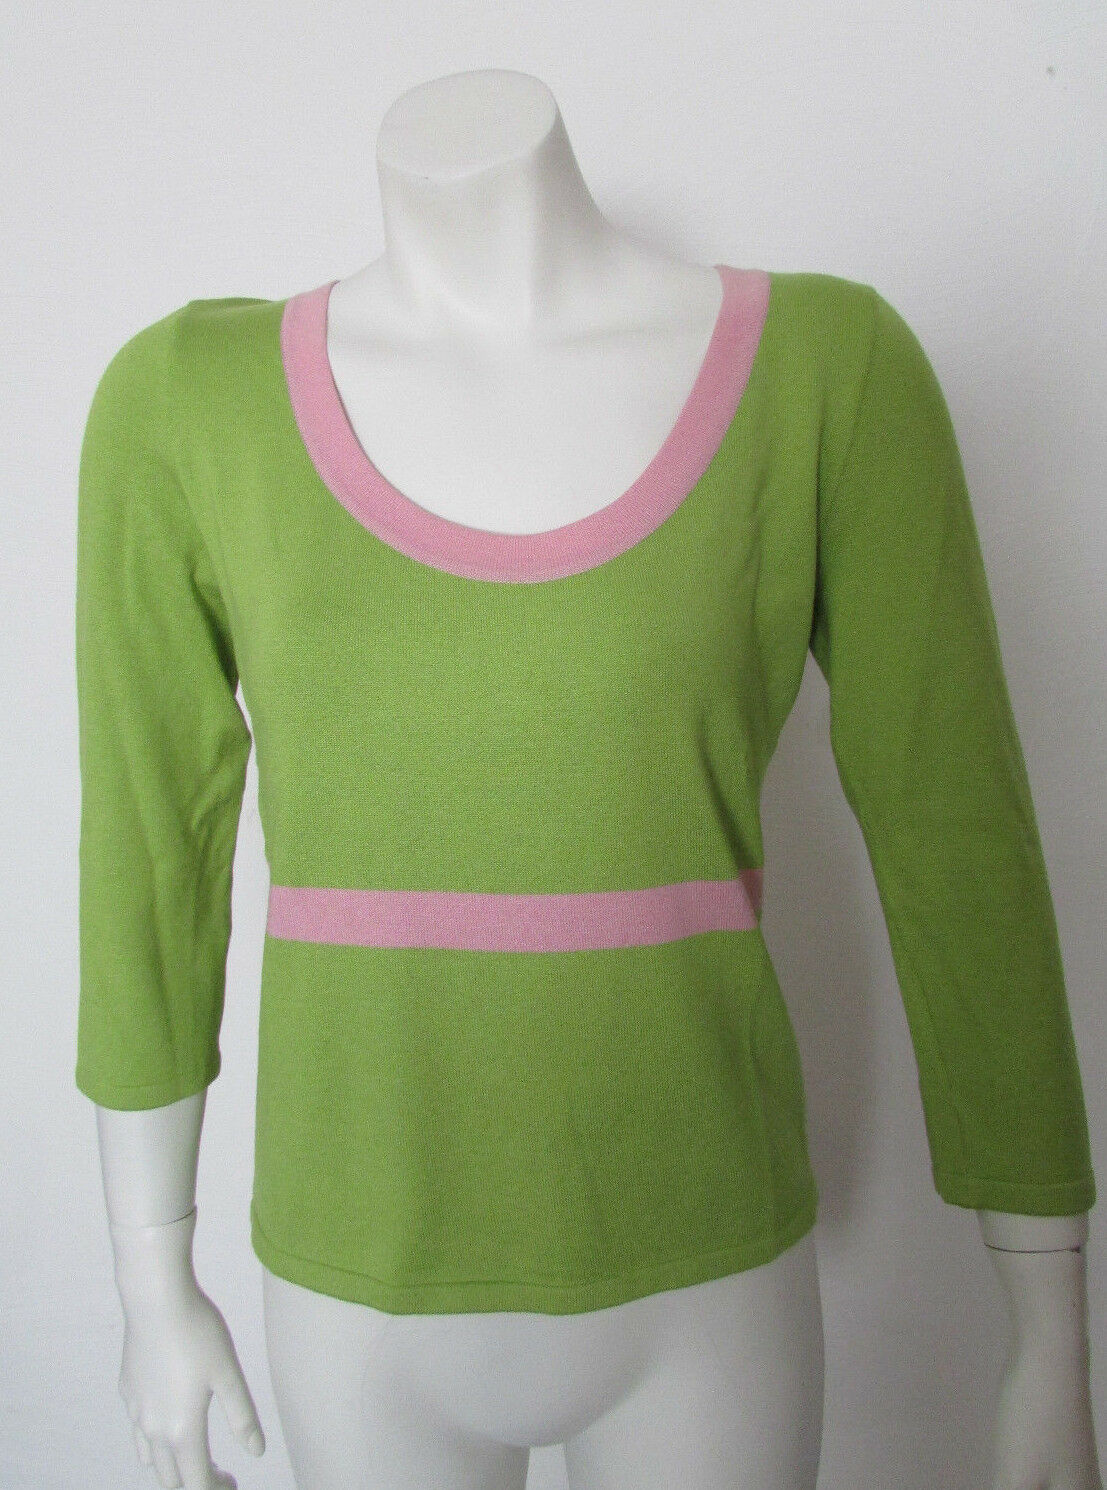 Valentino knit top blouse sweater sz Large Grün Rosa trim cut out back